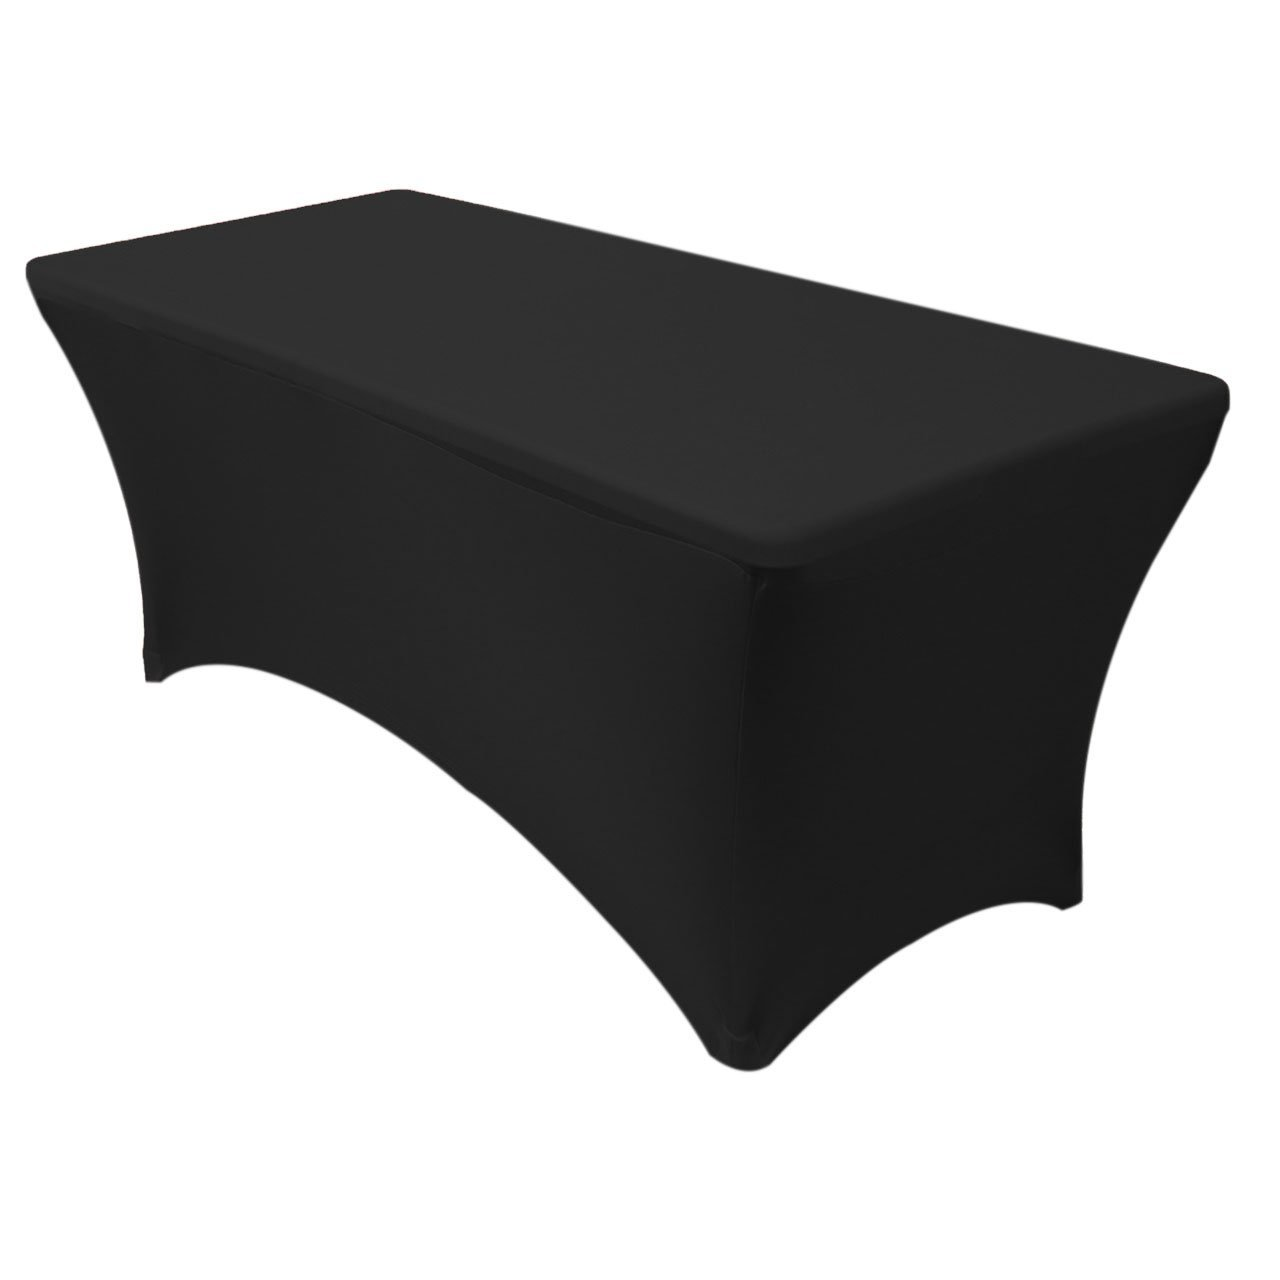 black chair covers walmart herman miller task yourchaircovers 6 ft rectangular stretch tablecloth wrinkle and stain resistant spandex fabric by your com